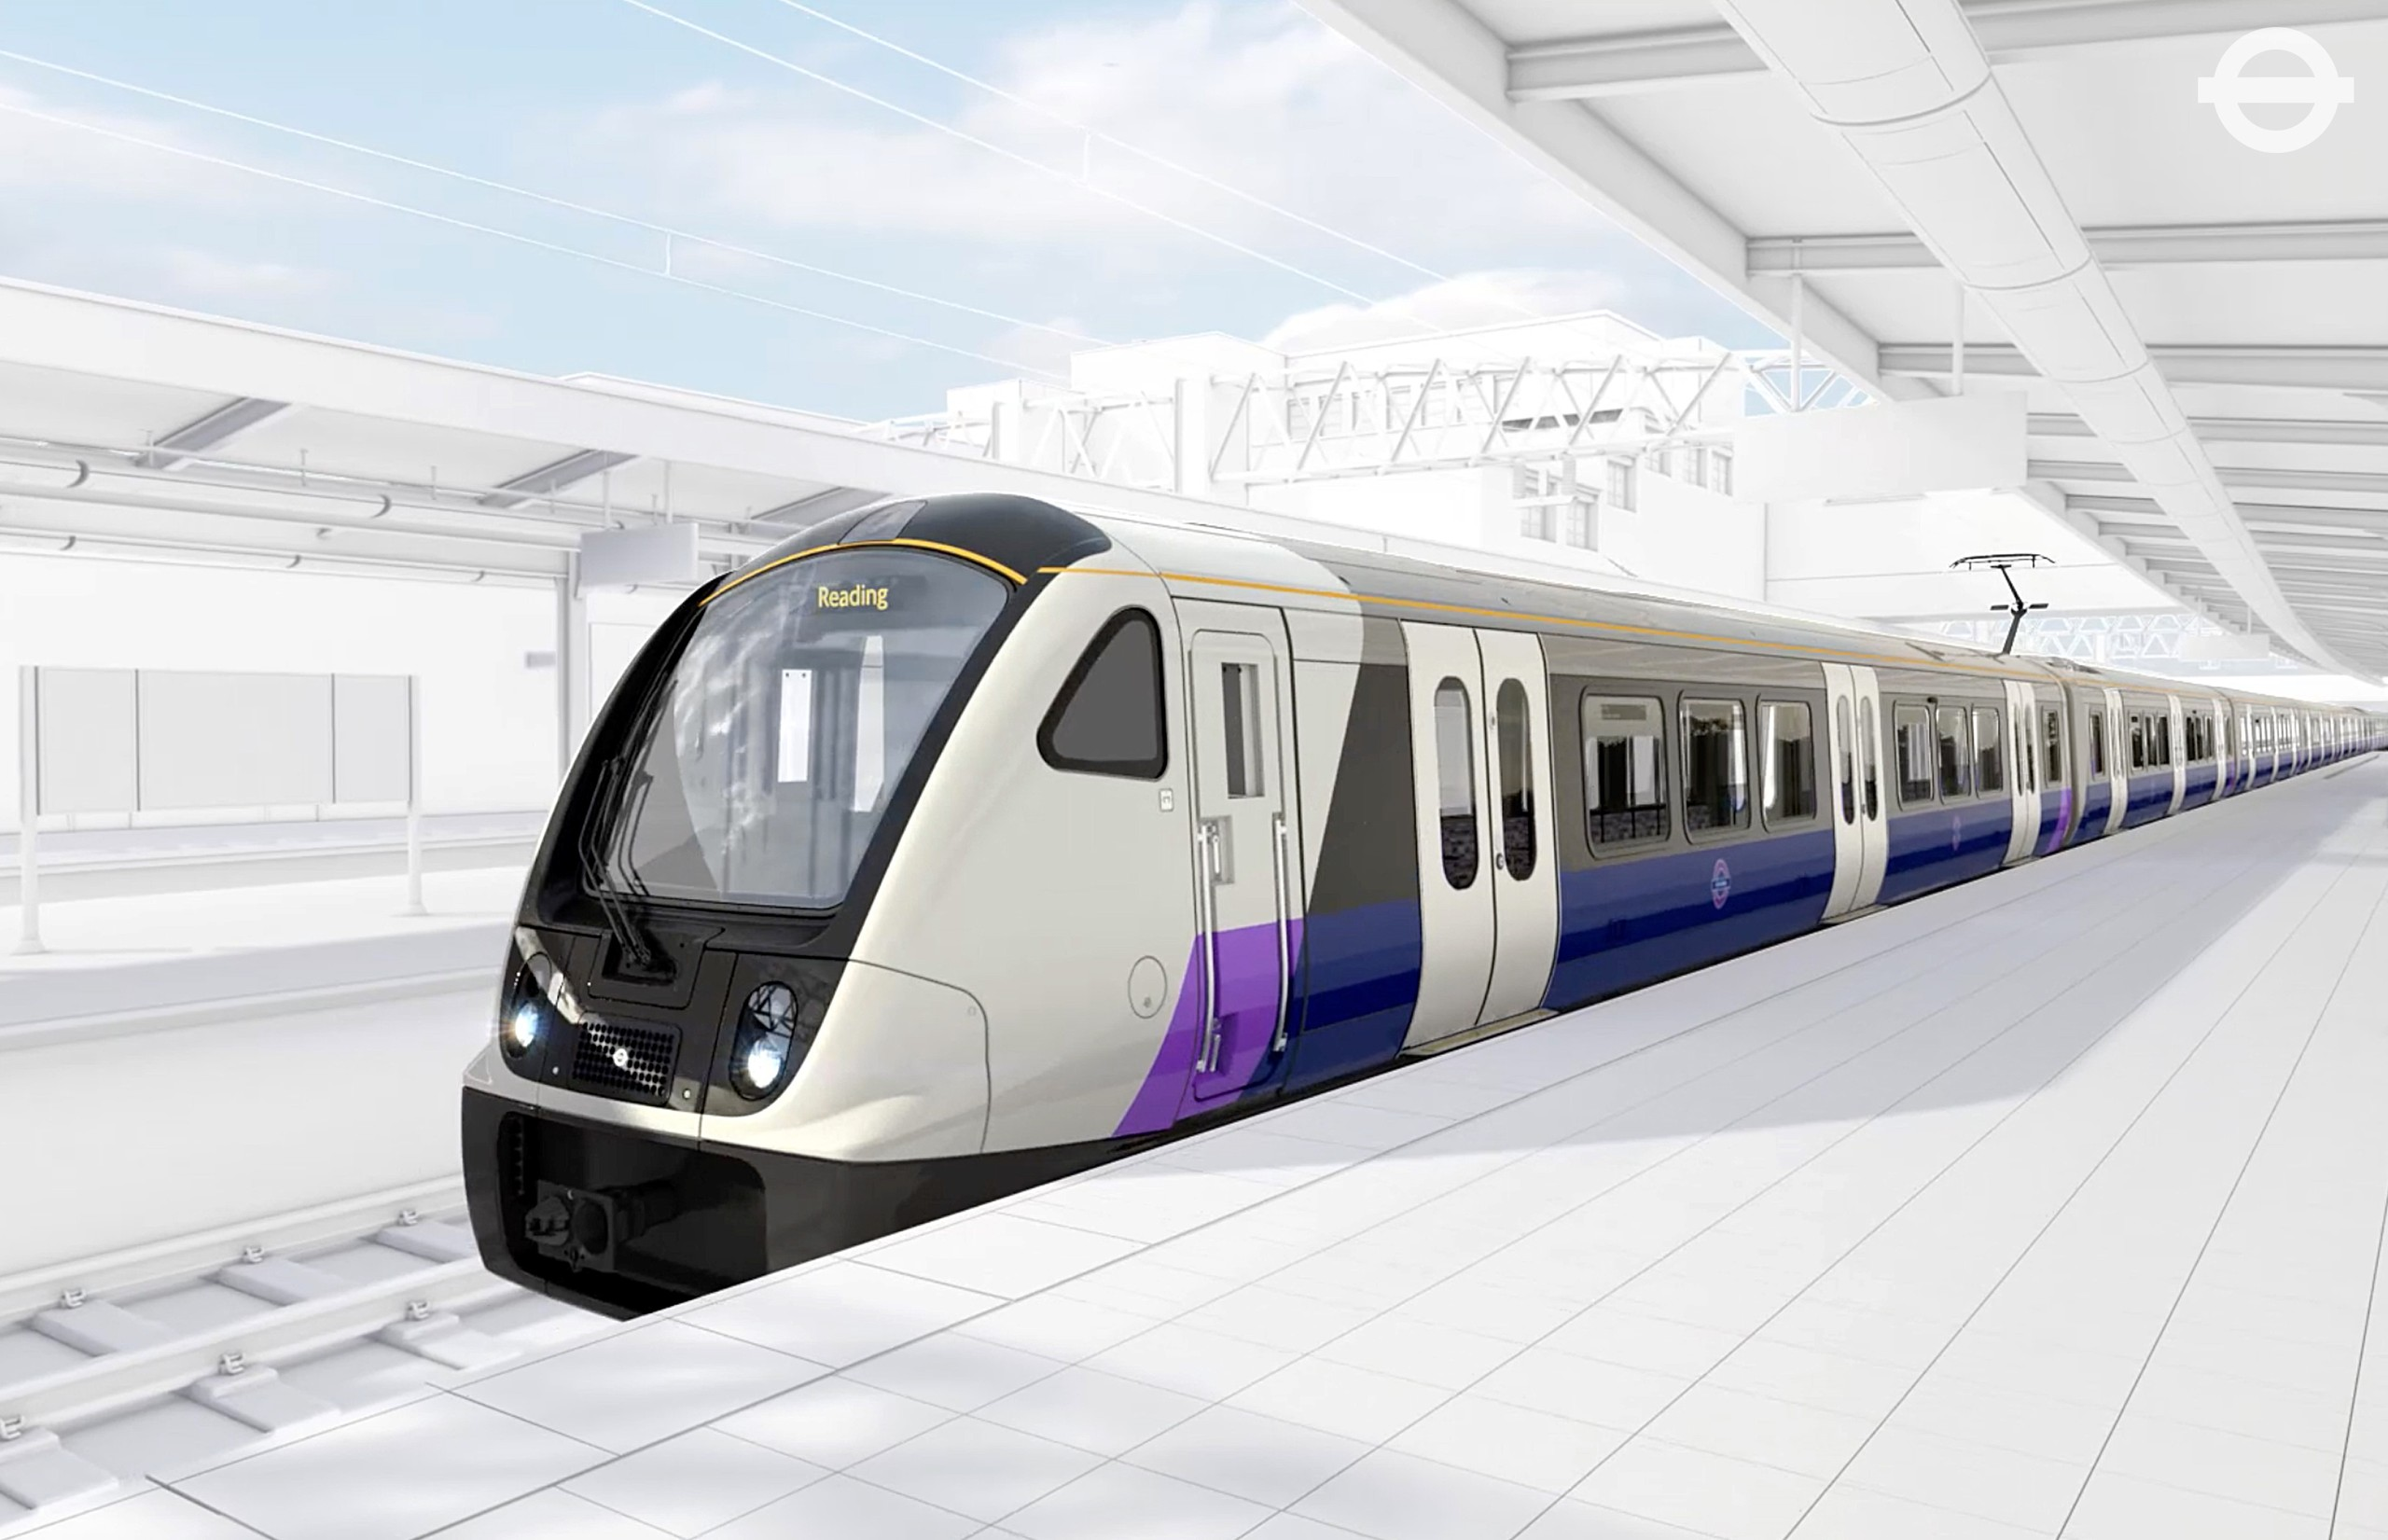 TfL image - Crossrail train exterior_214475